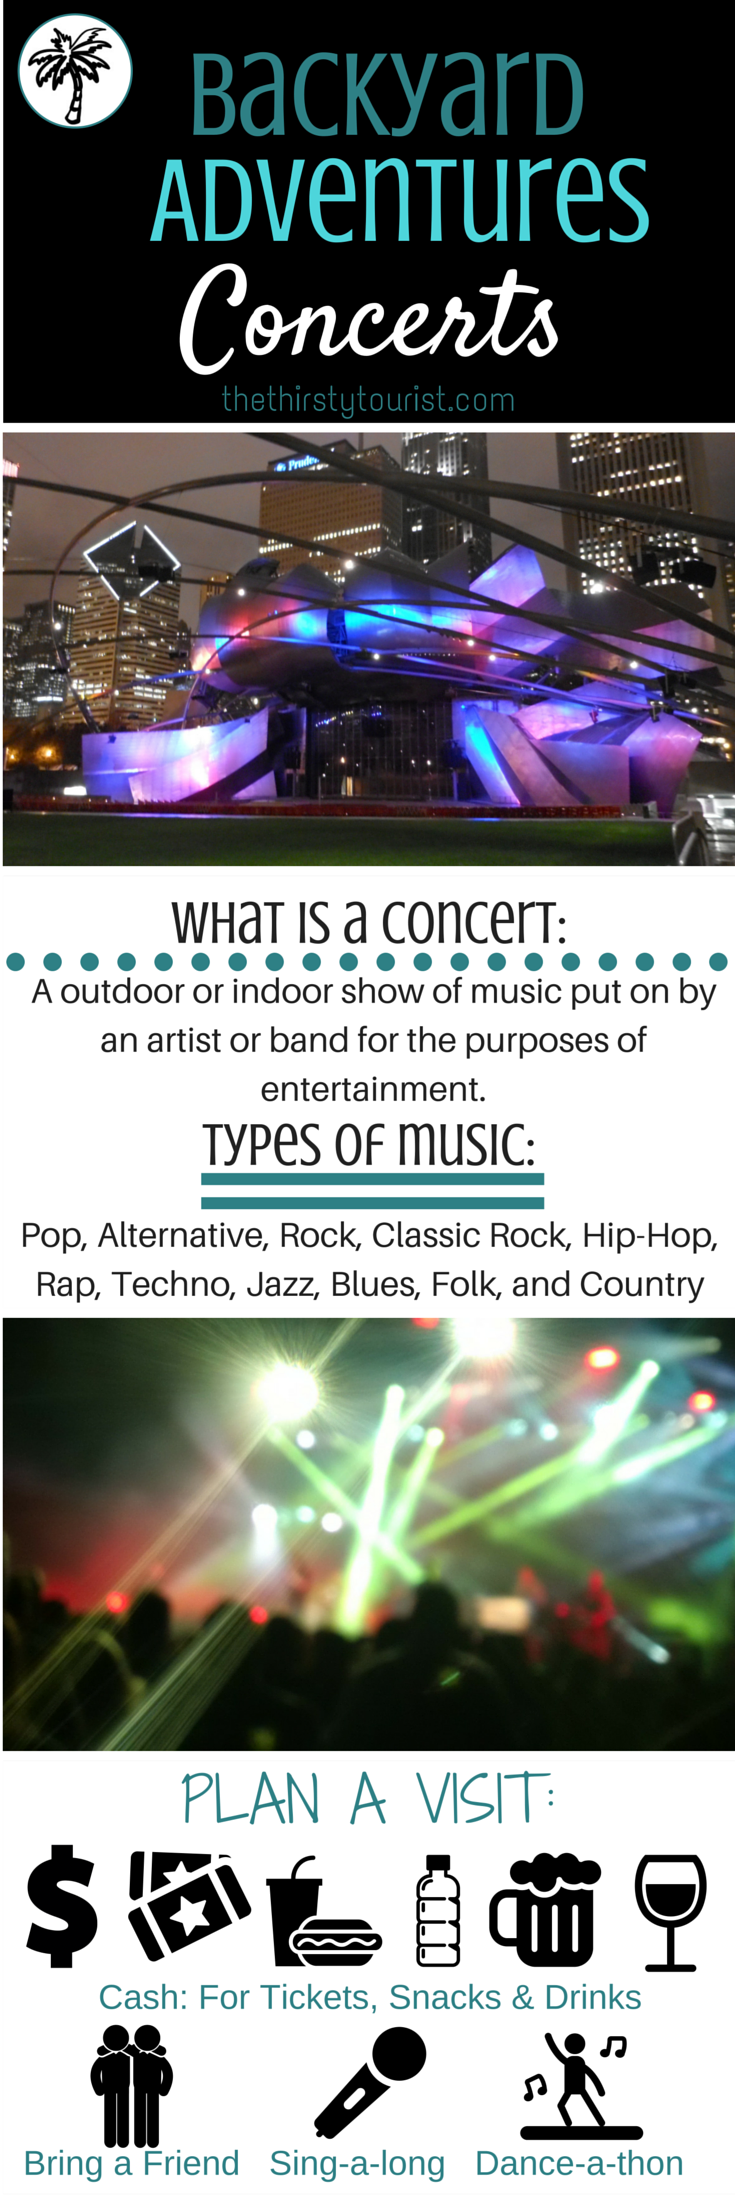 want to know about the backyard adventure of attending a concert